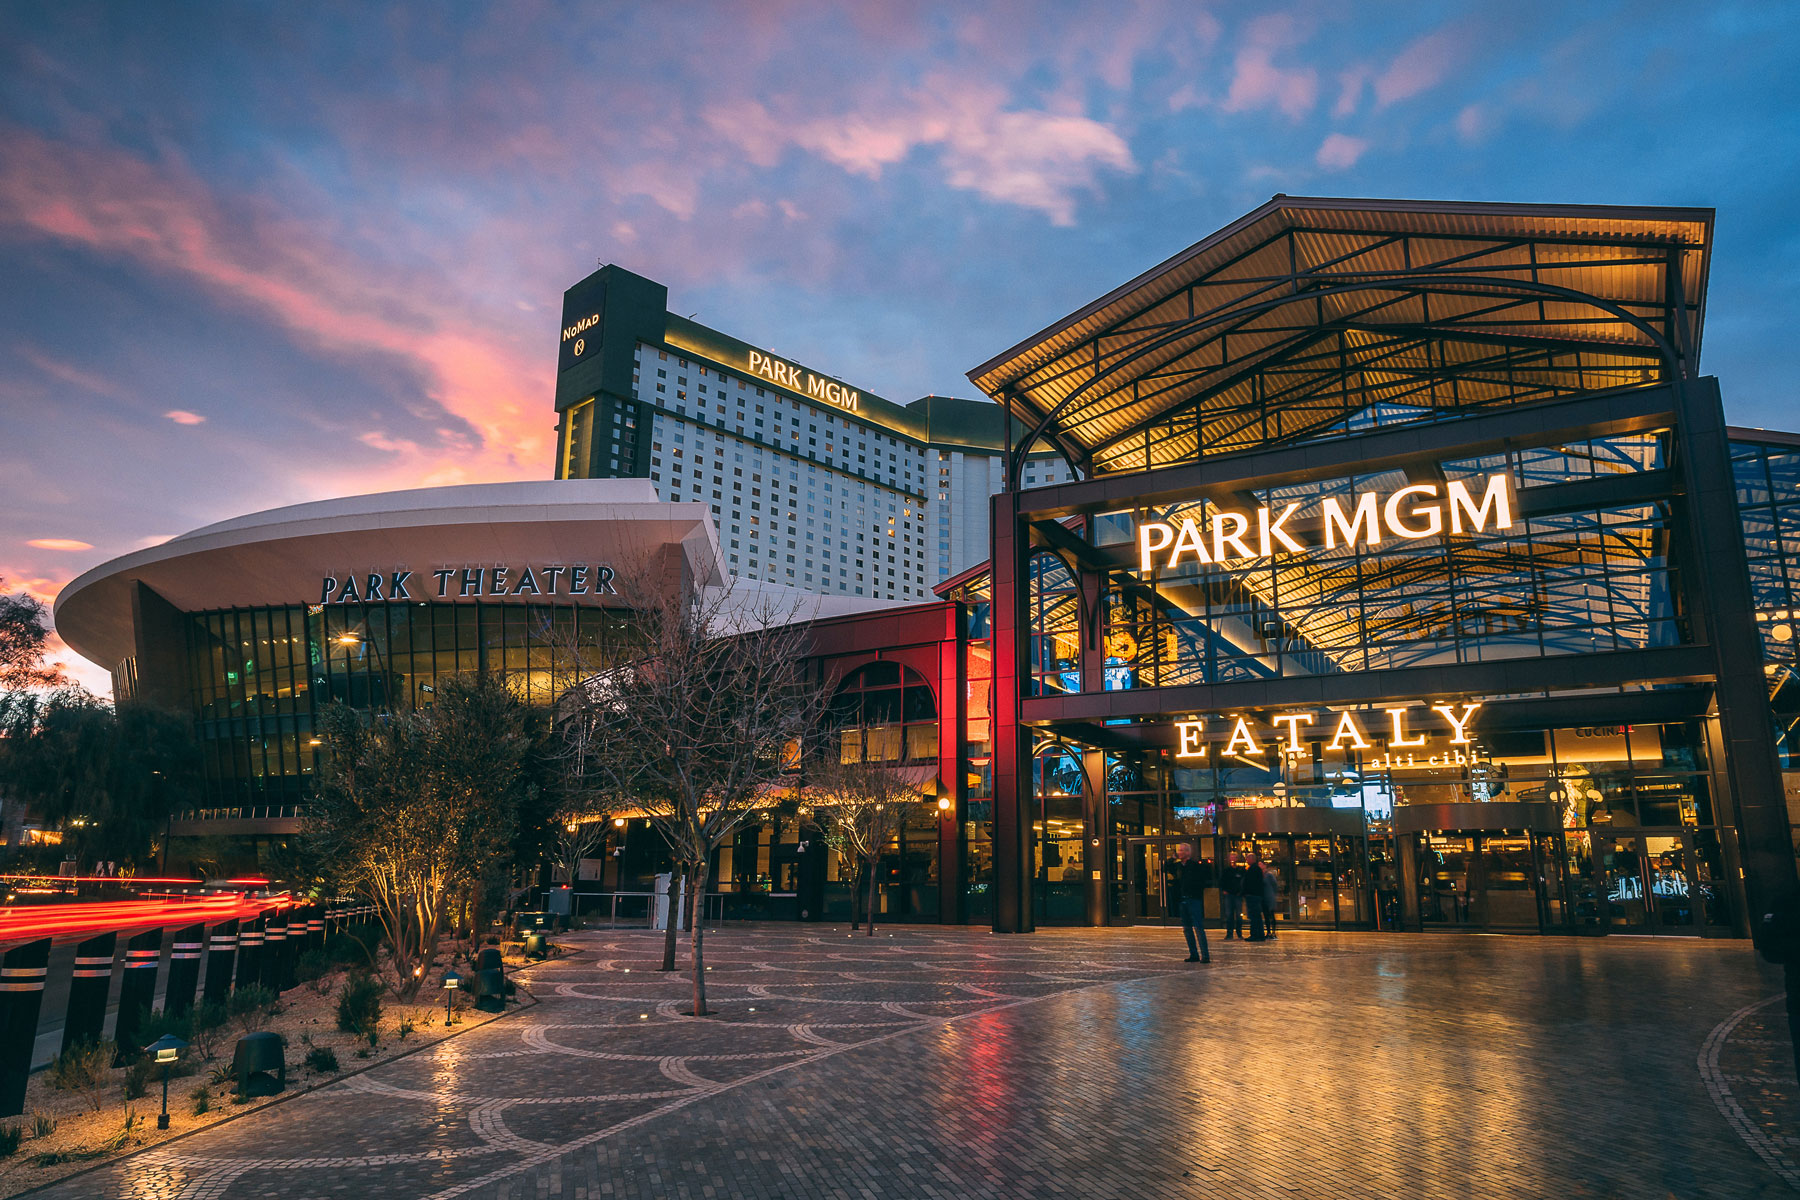 Exterior of Park MGM hotel with Eataly sign